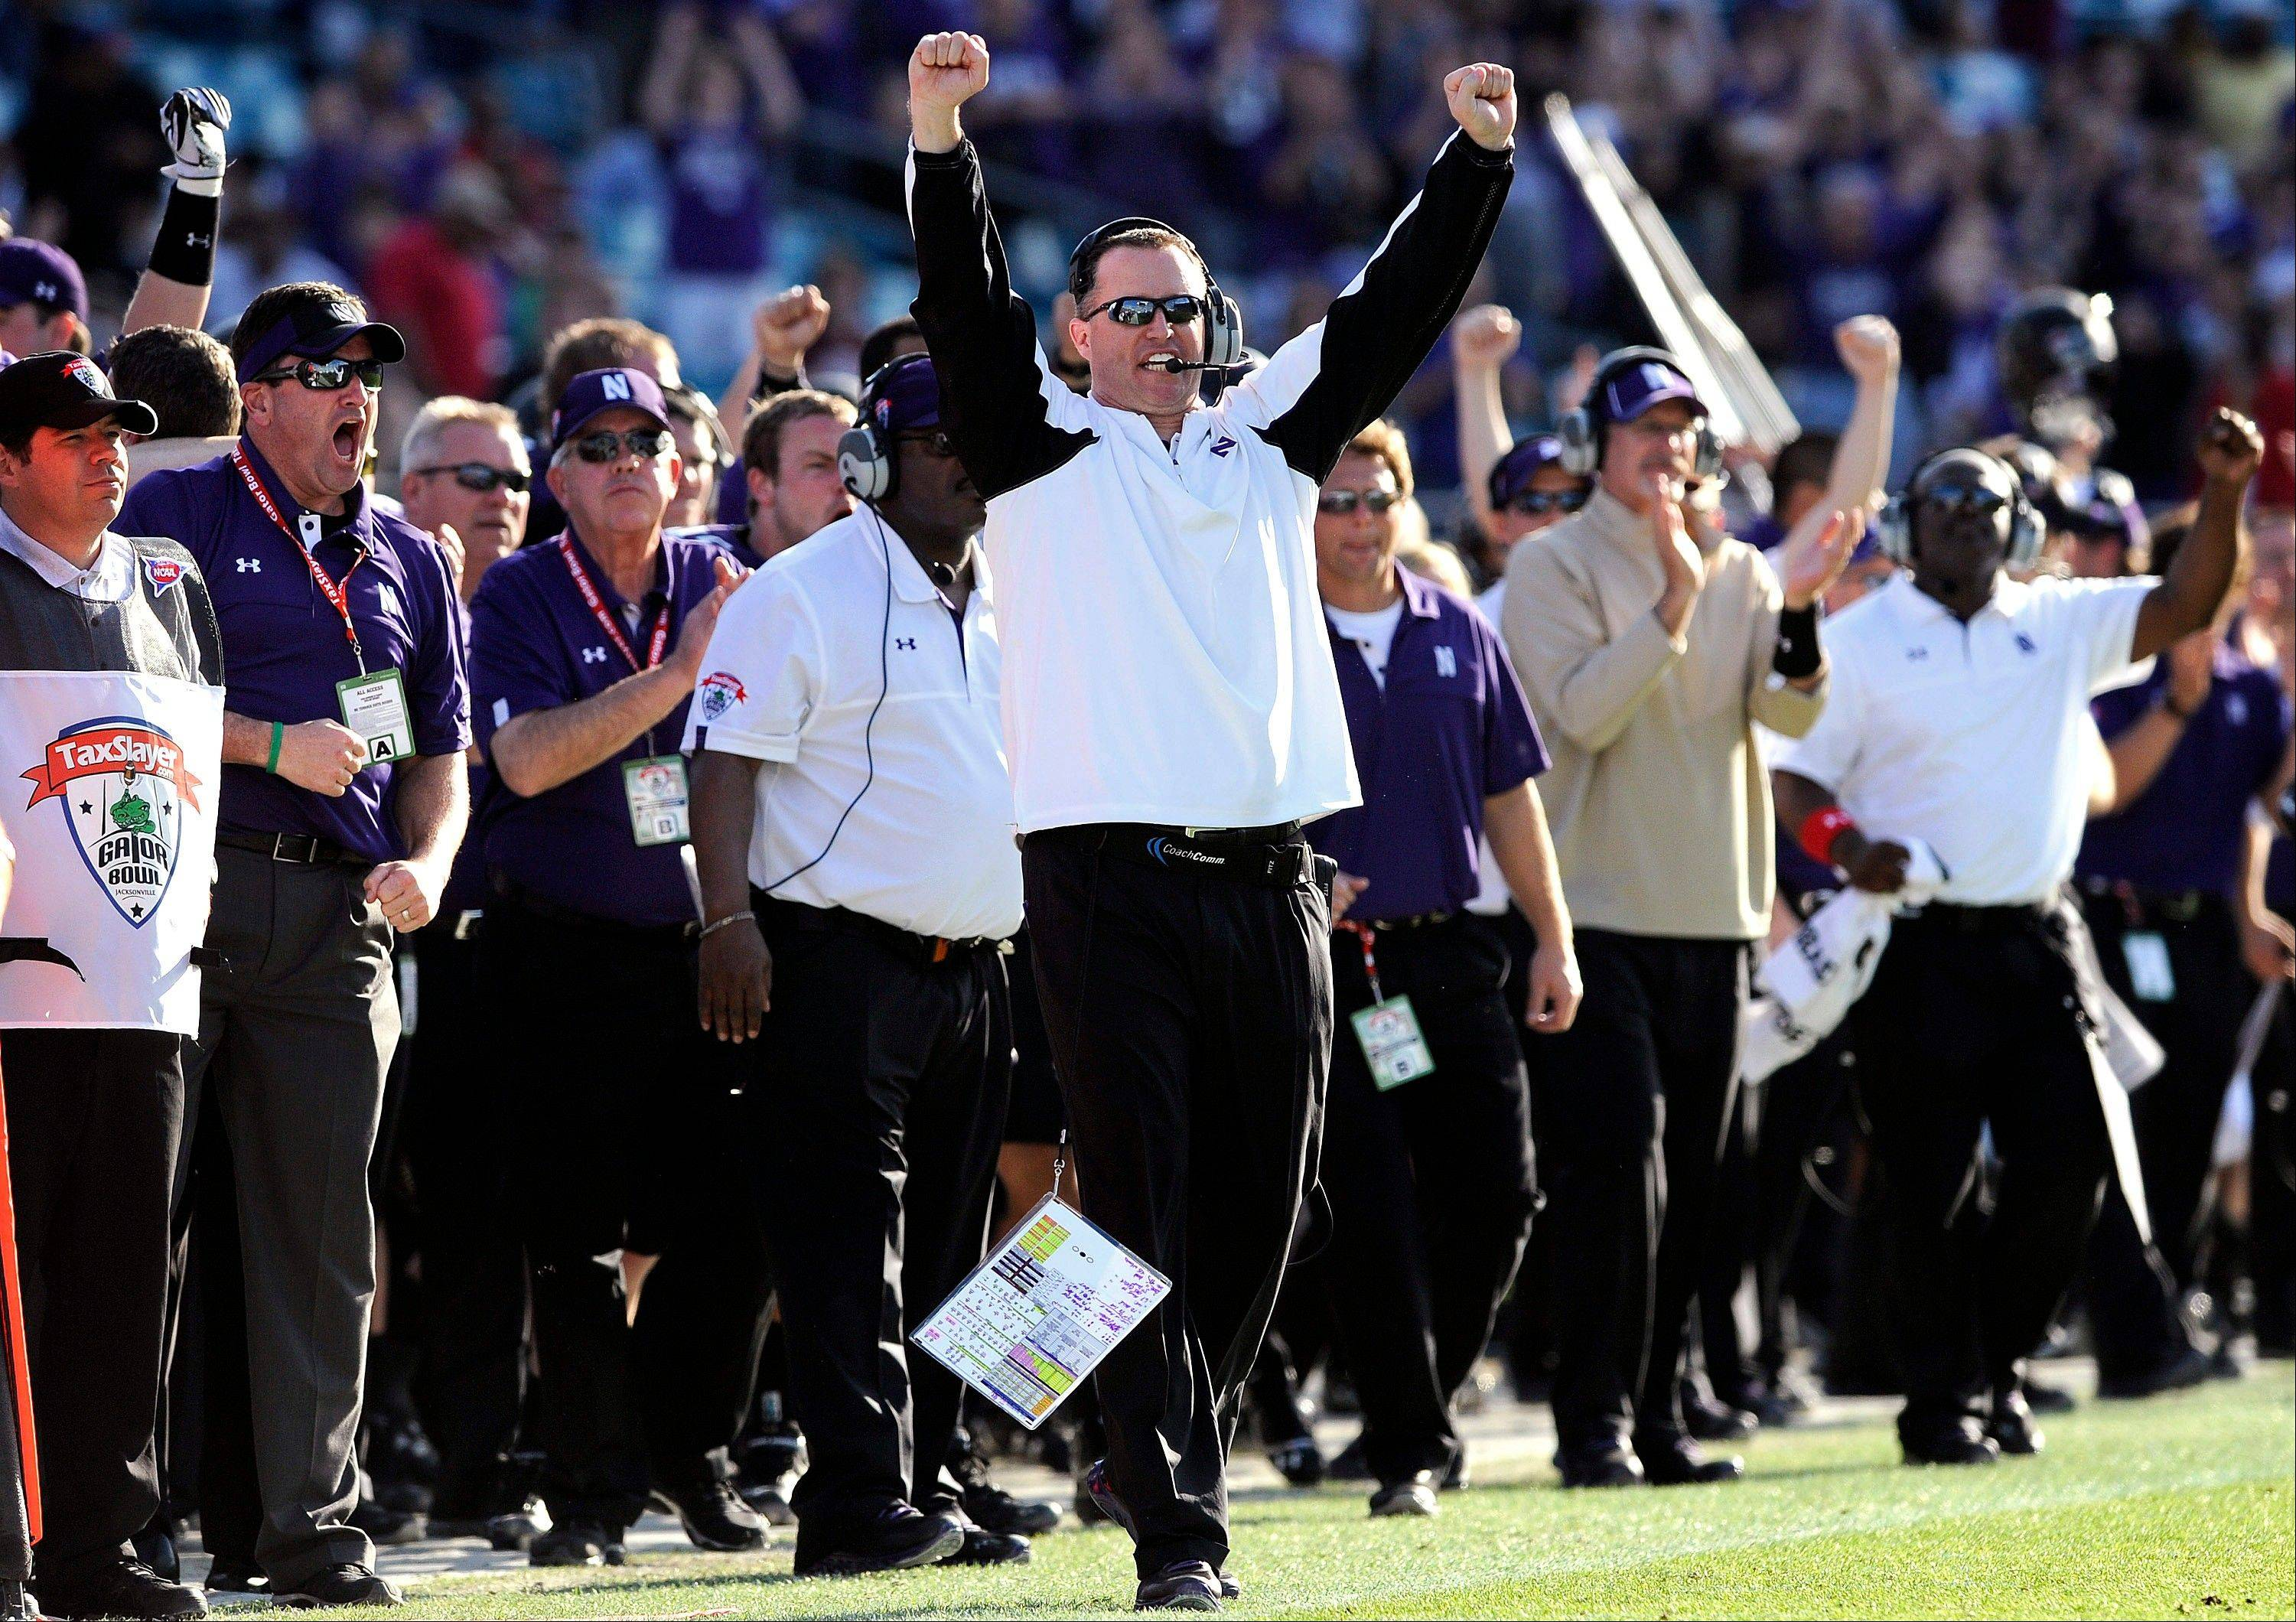 Northwestern coach Pat Fitzgerald, celebrating the team's Gator Bowl victory over Mississippi State on New Year's Day, expects a tough game when his Wildcats visit the Cal Bears on Saturday night.